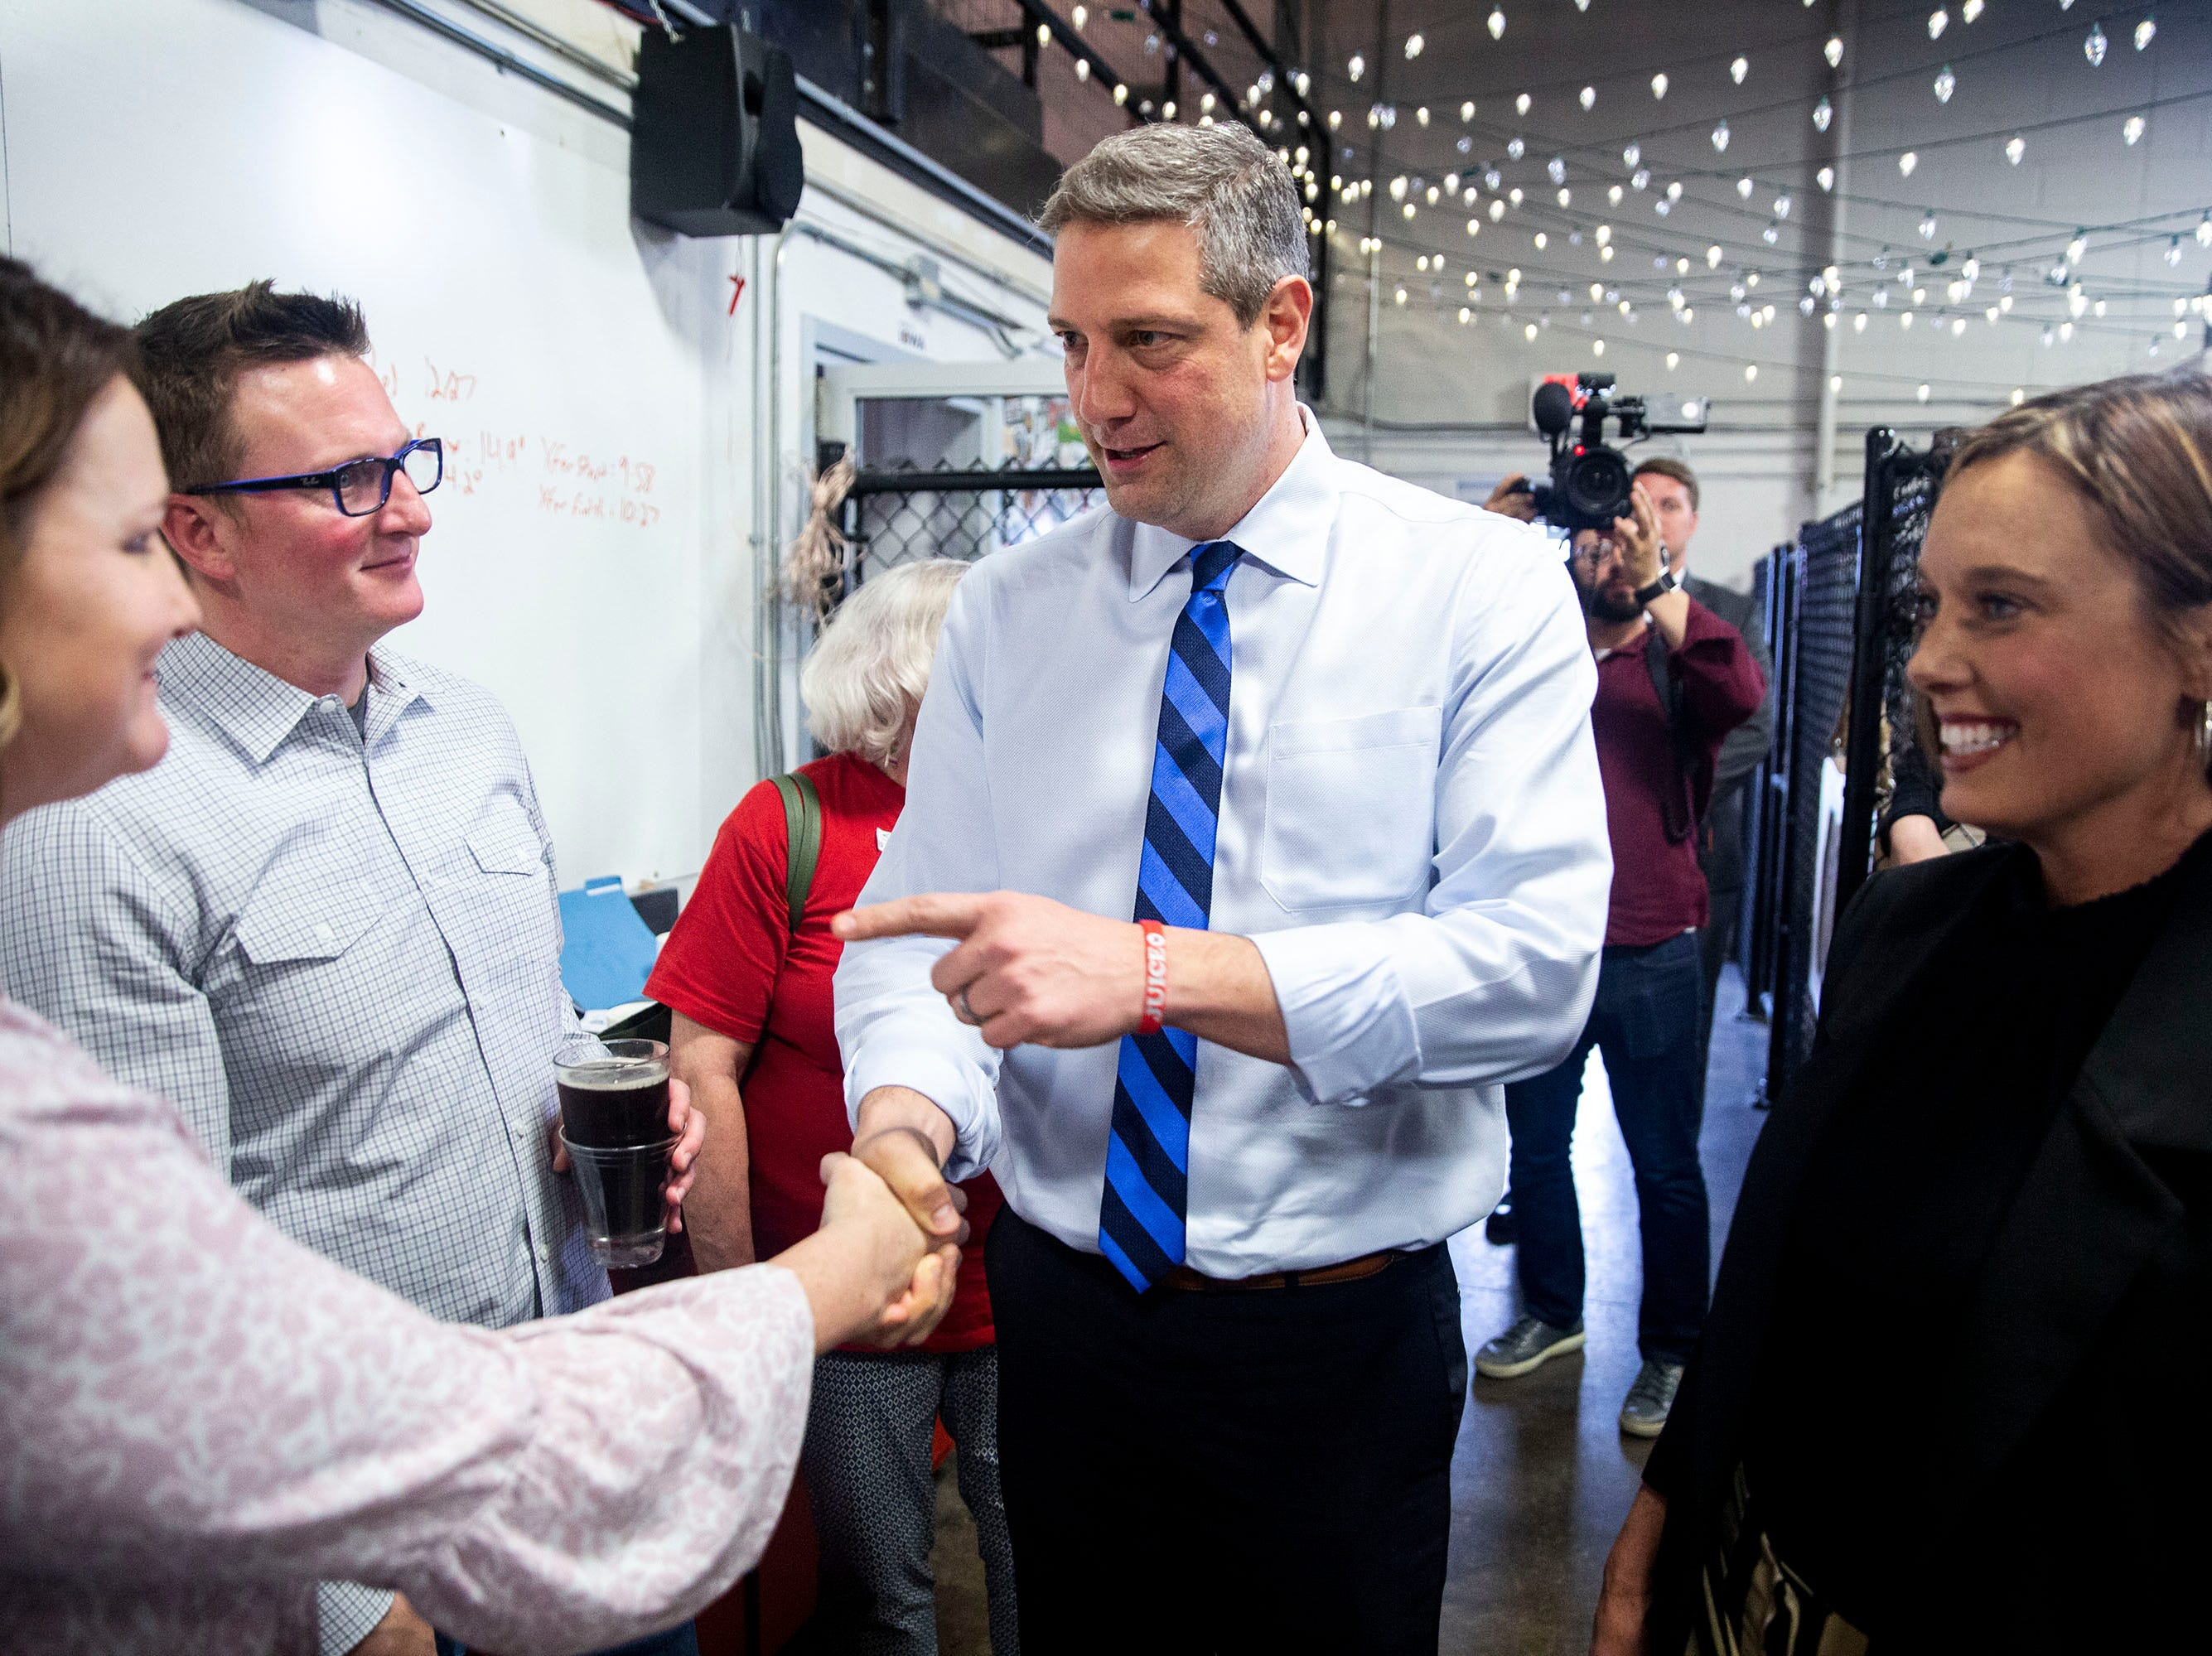 U.S. Rep. Tim Ryan, D-Ohio, and his wife, Andrea Zetts, shakes hands with people at a meet and greet event organized by the Polk County Democrats on Sunday, April 7, 2019, at Fox Brewing in West Des Moines. This is Ryan's first visit to Iowa after announcing he's running for president.